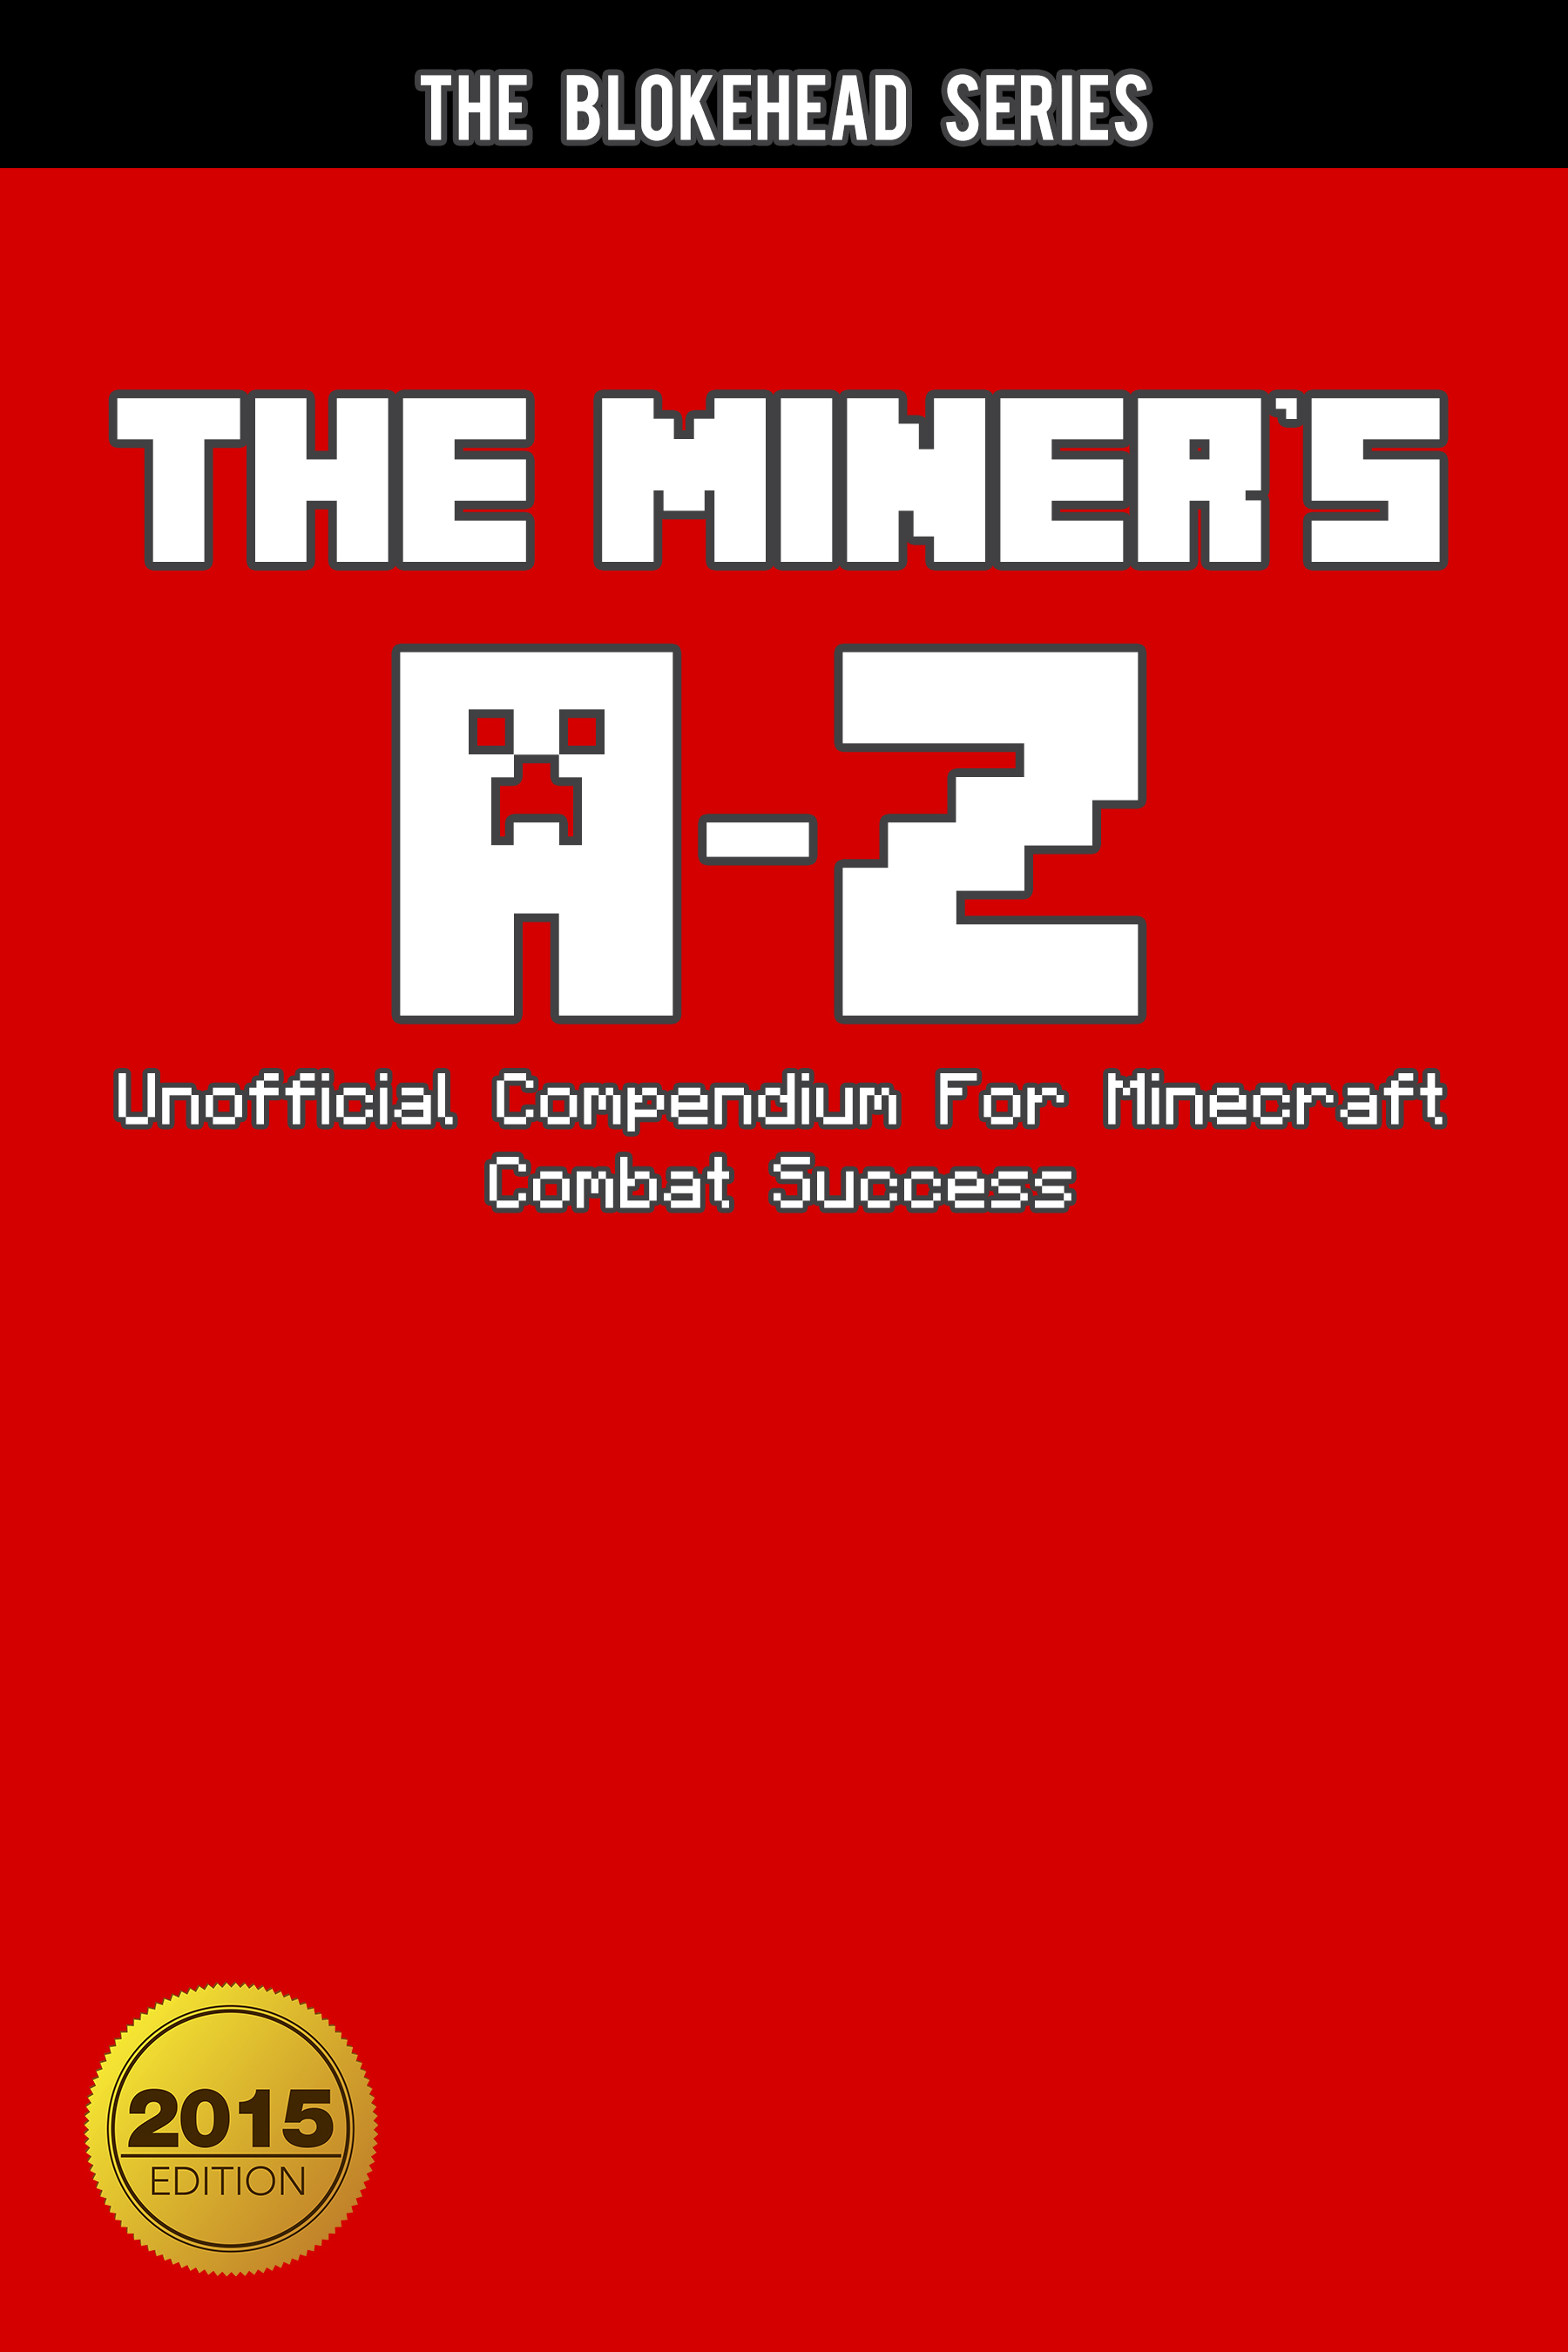 The miner's a - z unofficial compendium for minecraft combat success